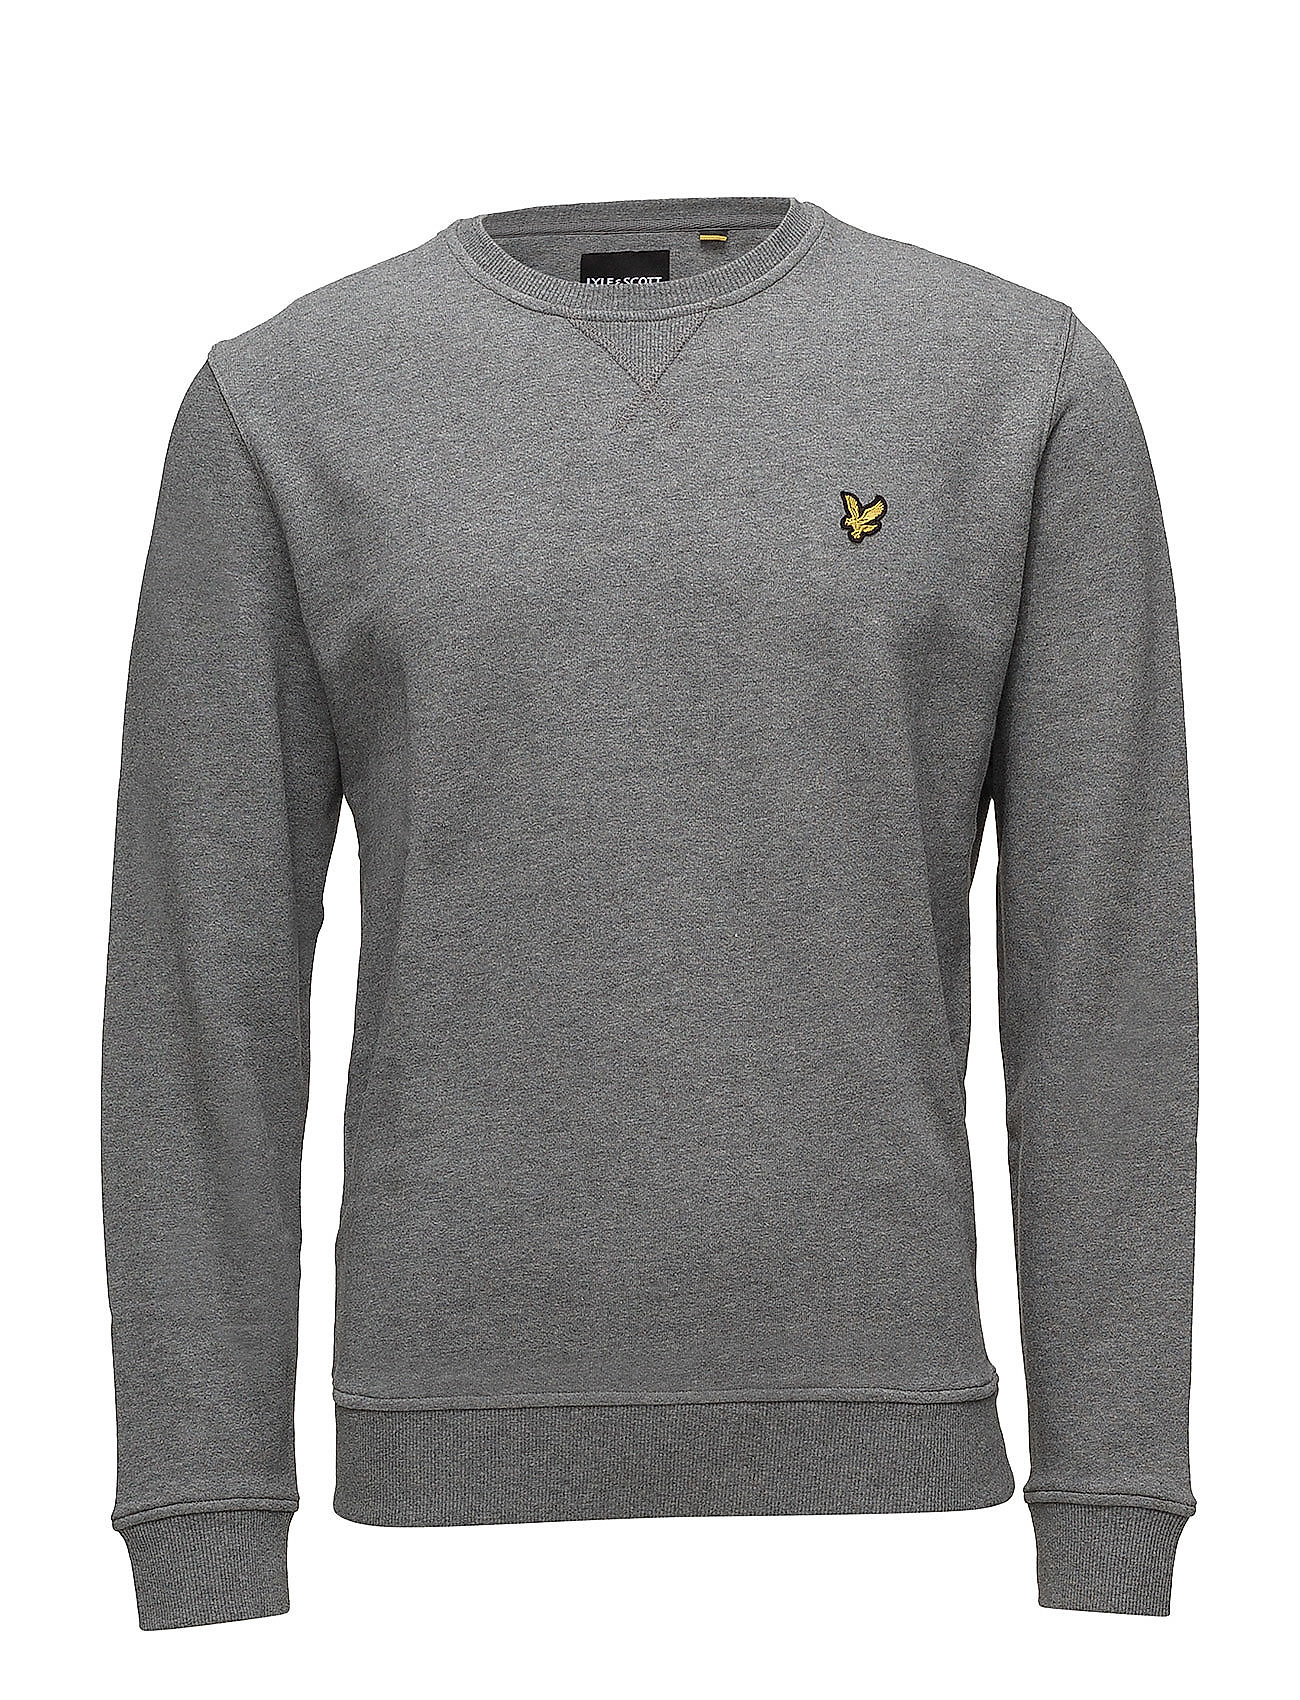 Lyle & Scott Crew Neck Sweatshirt - MID GREY MARL